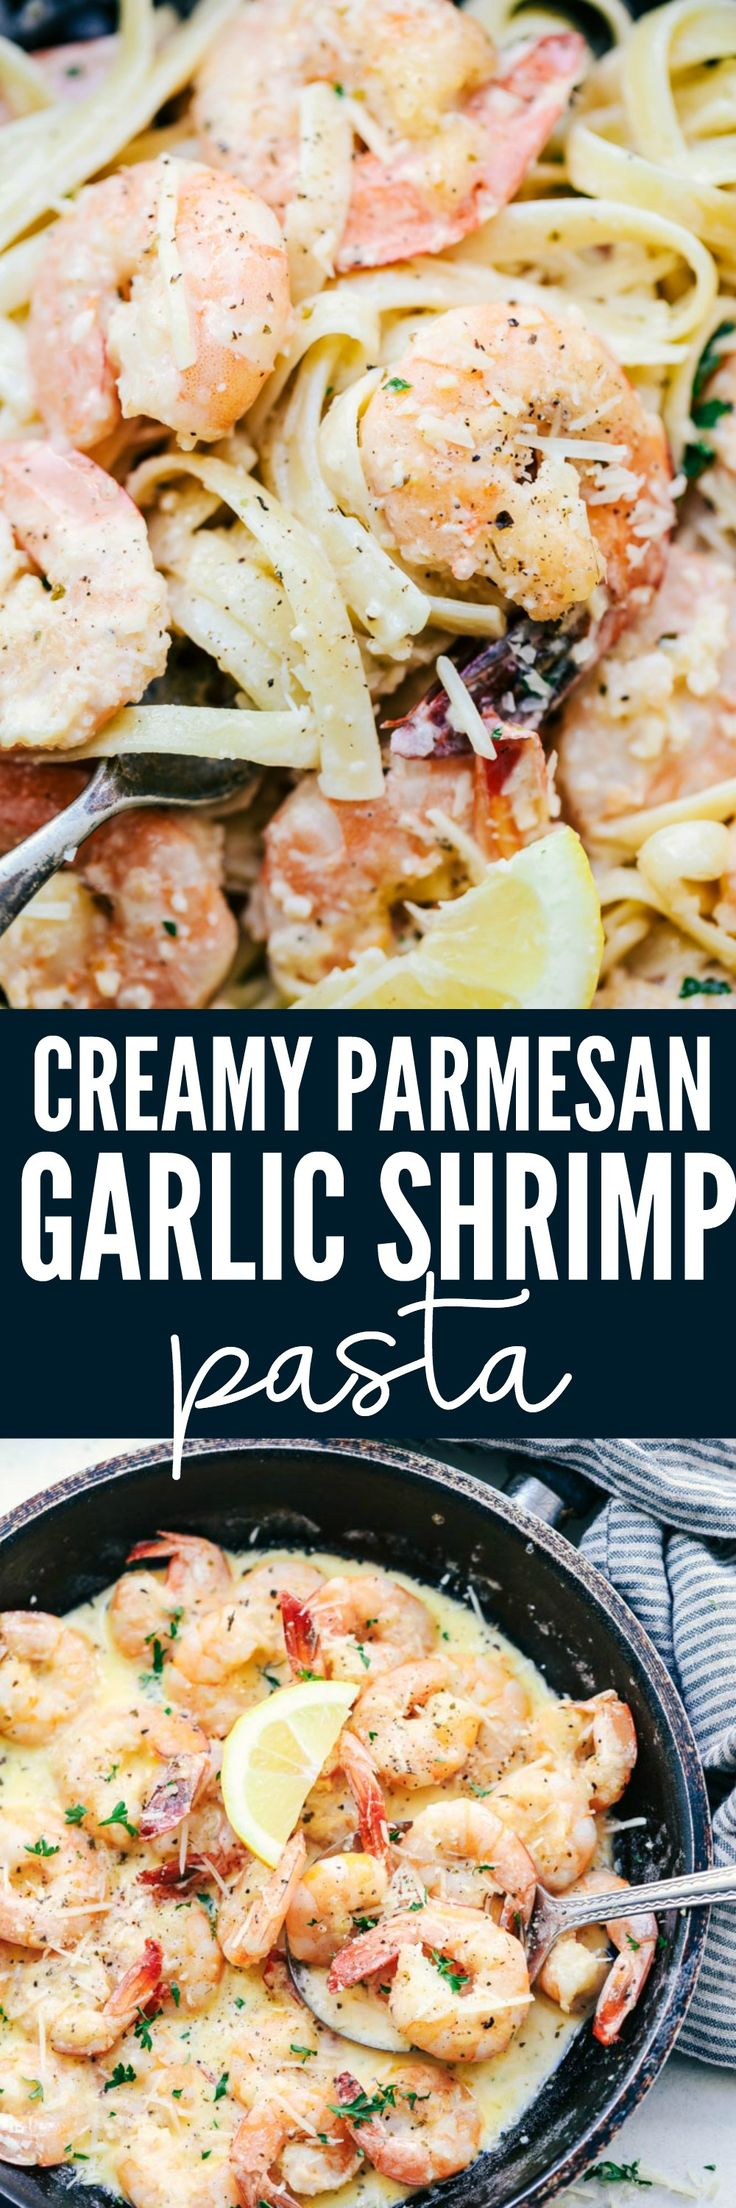 Creamy Parmesan Garlic Shrimp Pasta is the perfect quick and easy meal that is on the dinner table in less than 20 minutes! Shrimp get coated in the very best creamy parmesan garlic sauce and is wonderful tossed with fresh pasta.